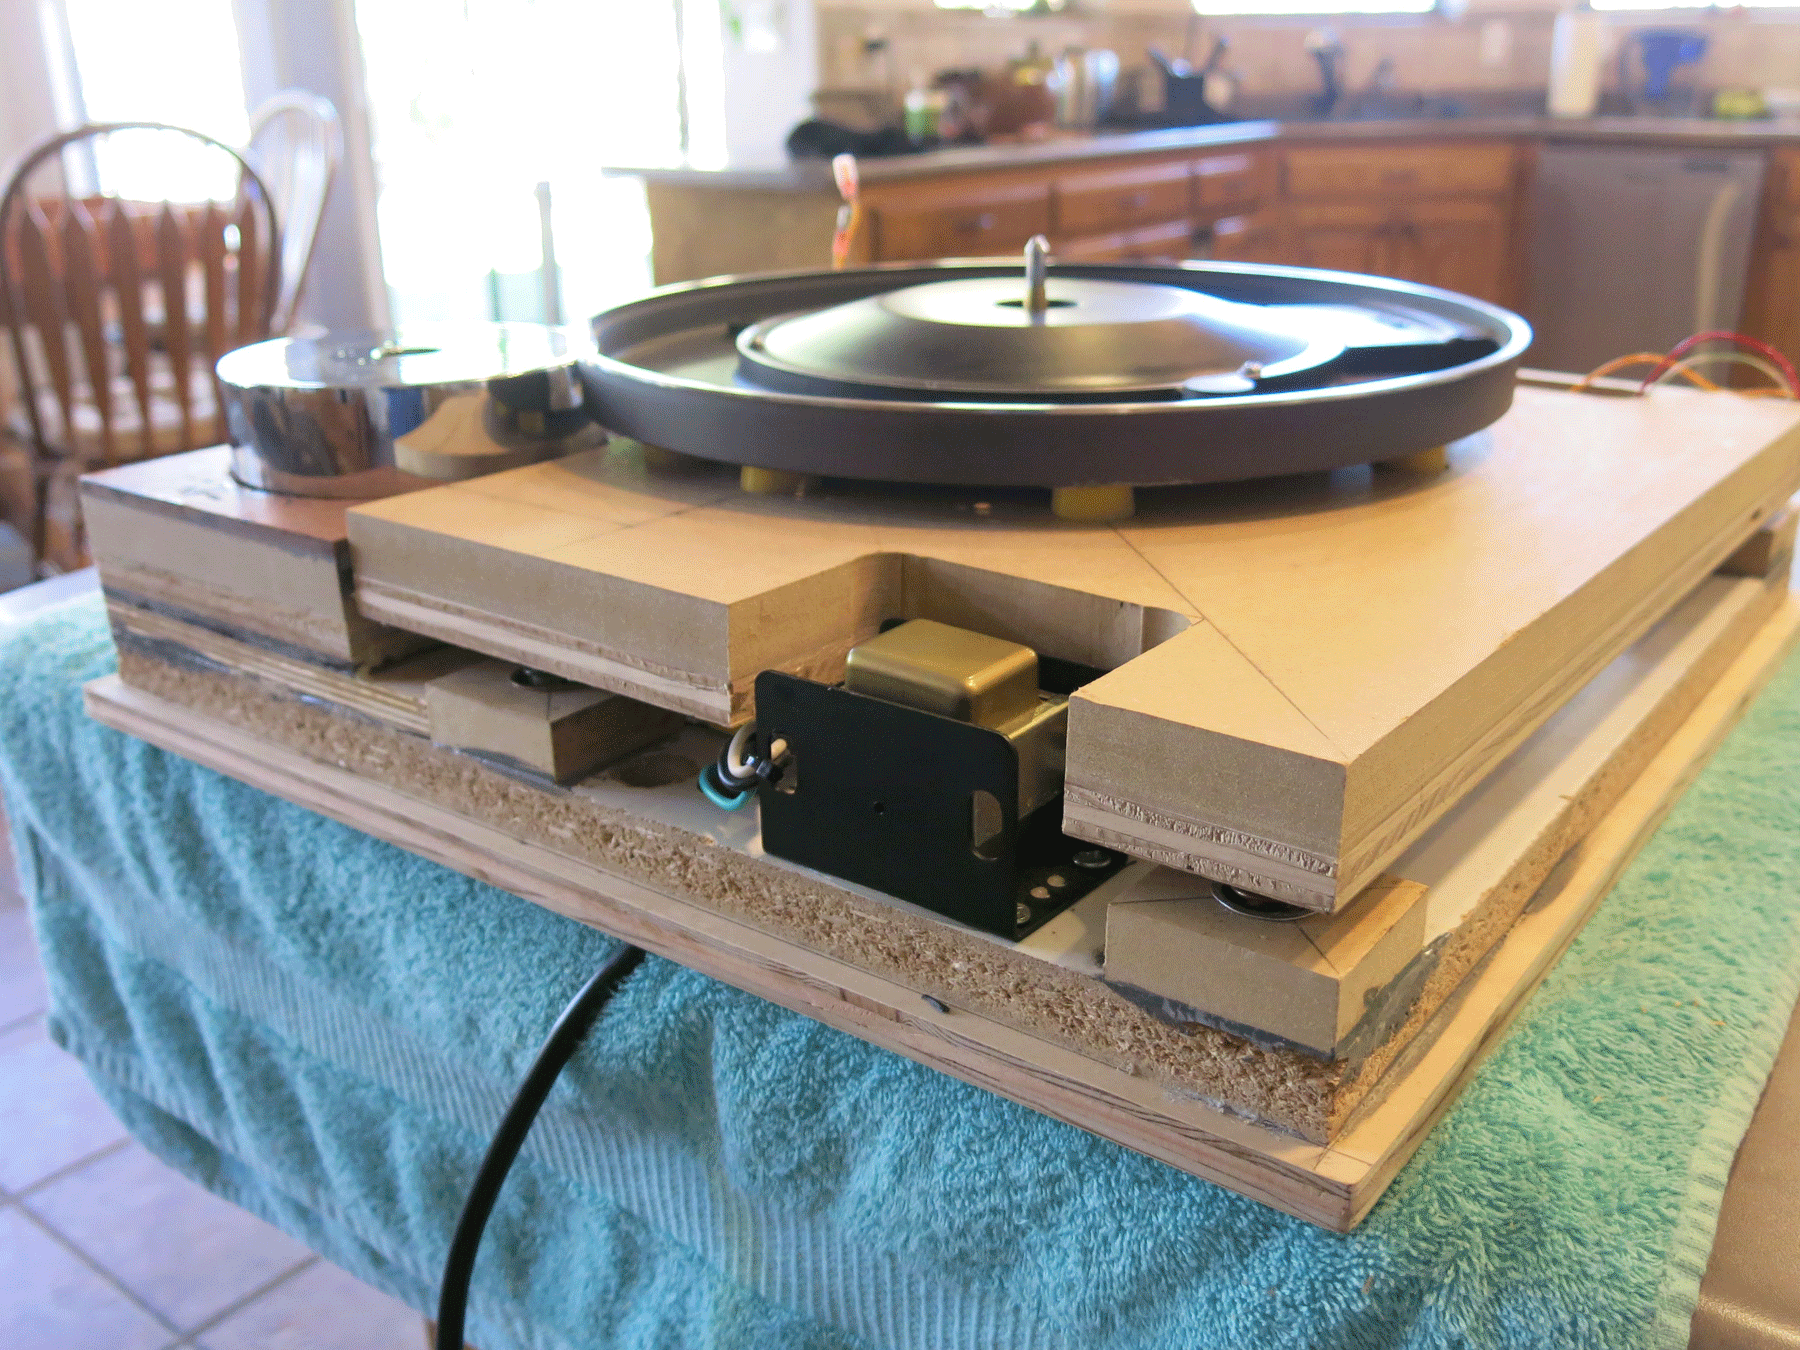 ../../images/woodwork/turntable/IMG_1308.png